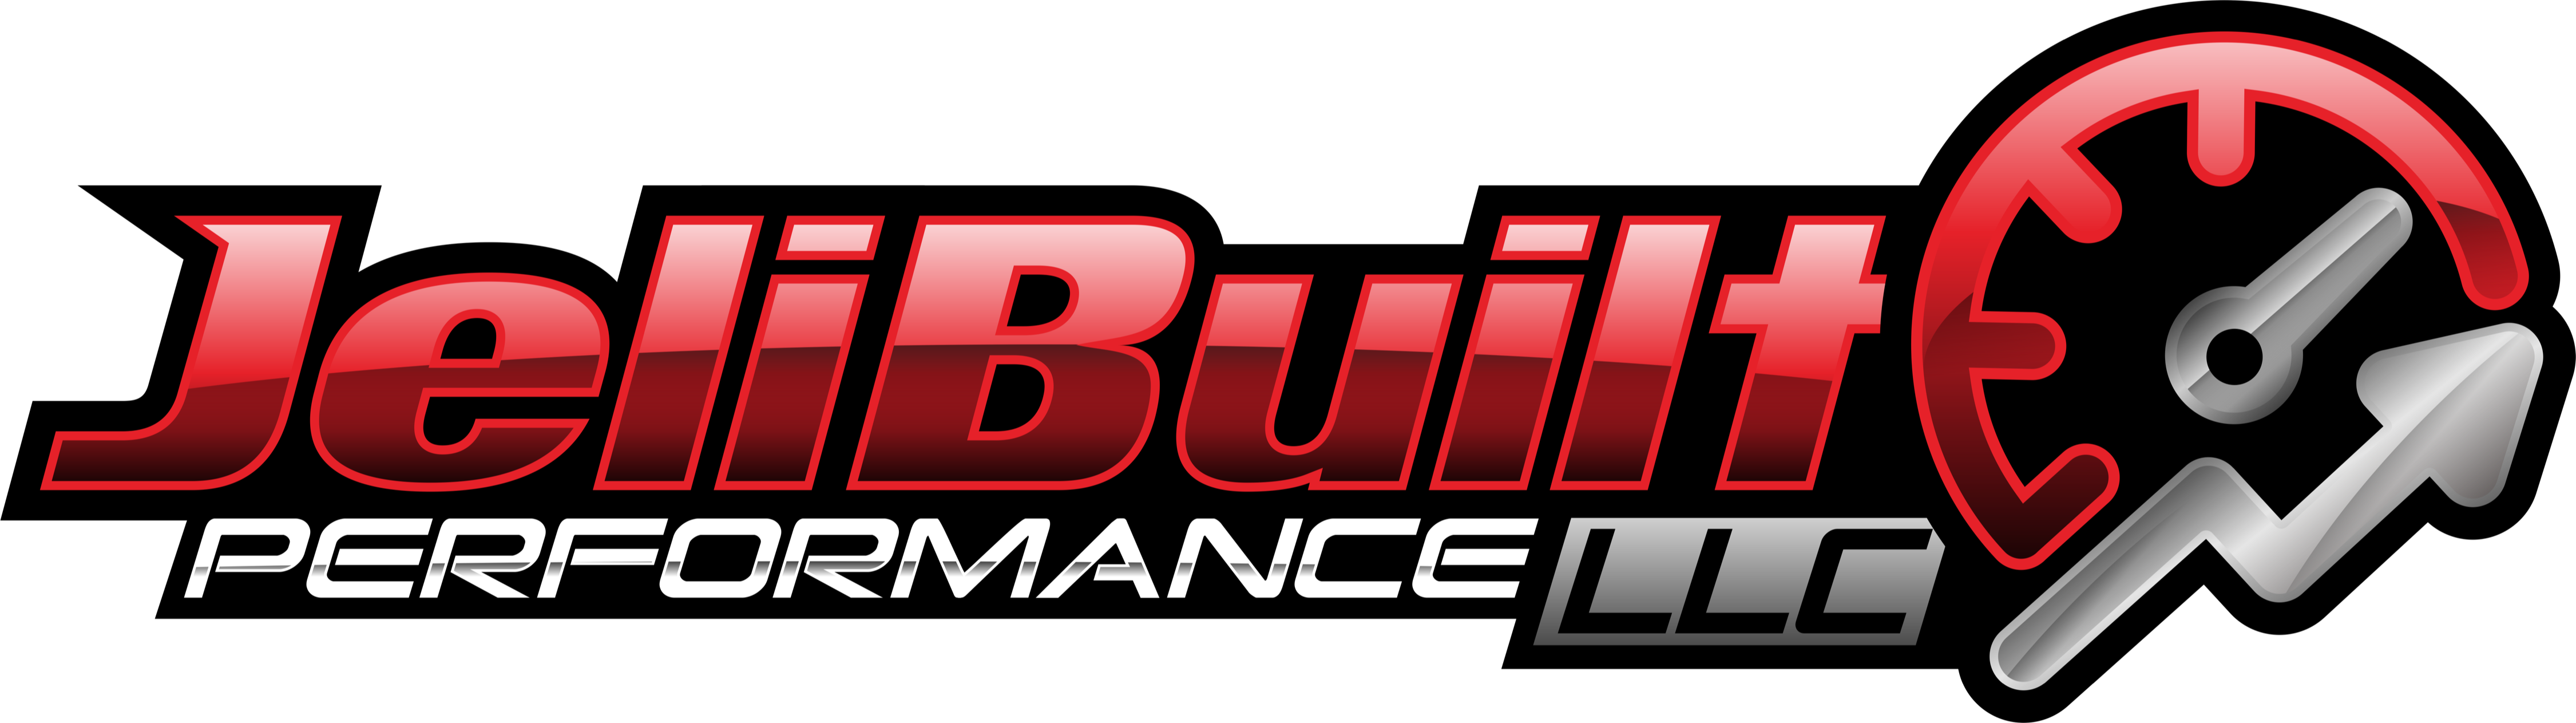 JeliBuilt Performance, LLC